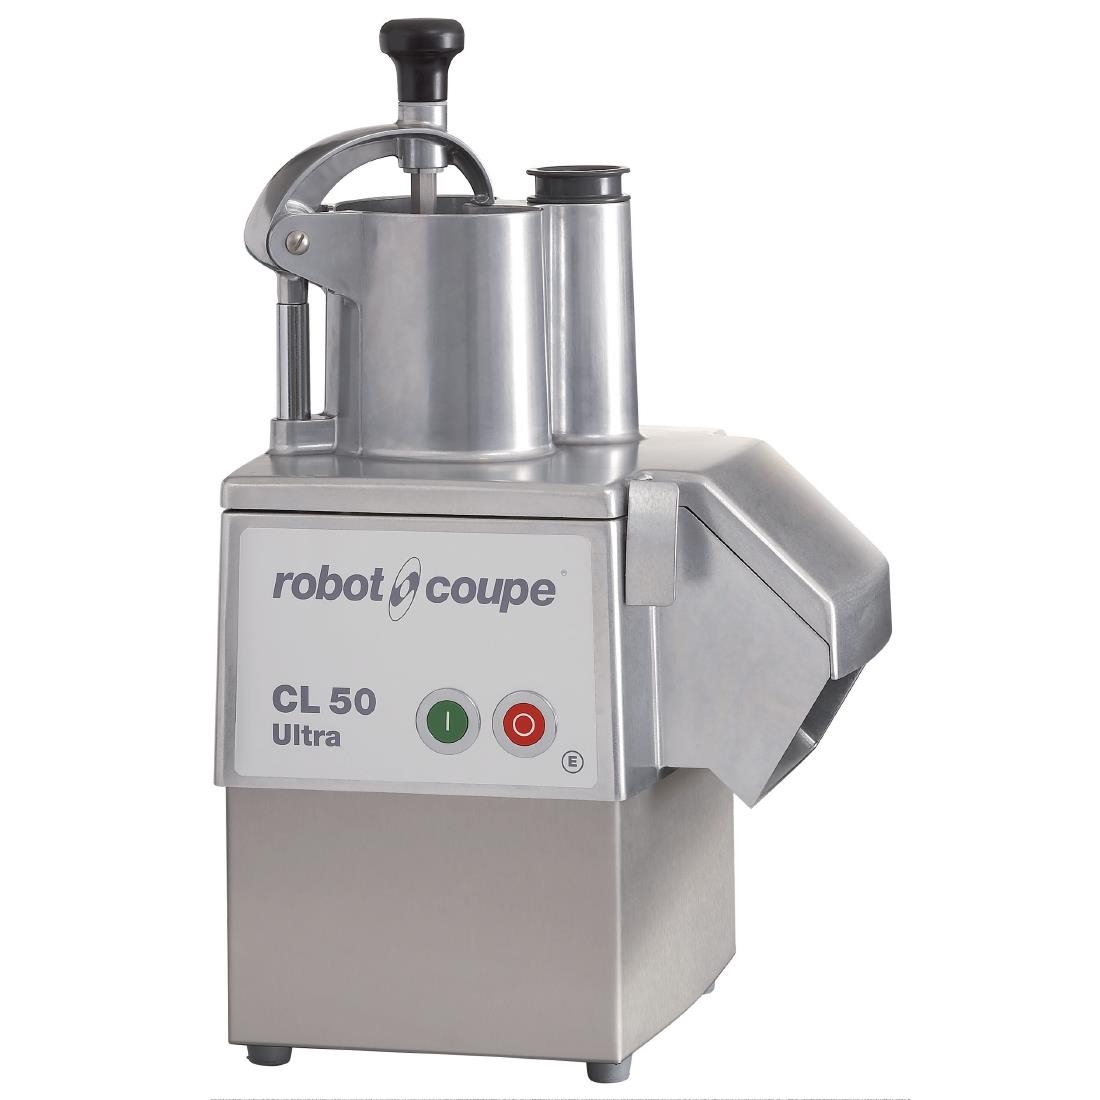 Image of Robot Coupe 1 Speed Veg Prep Machine CL50 Ultra